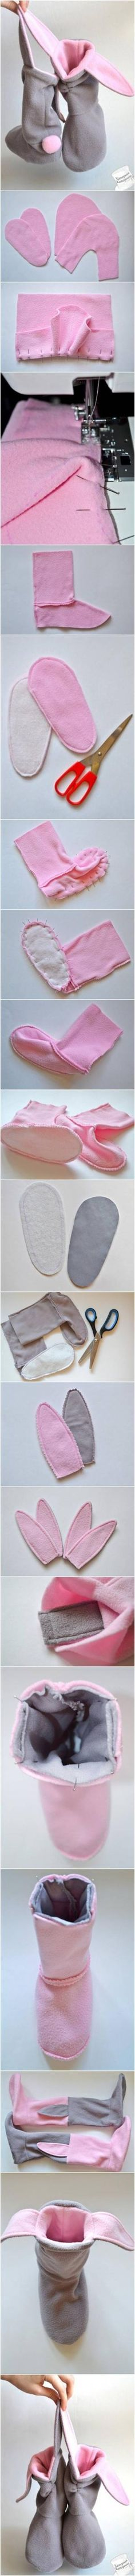 DIY Lovely Bunny Slippers #craft #sewing #slippers by bridgette.jons